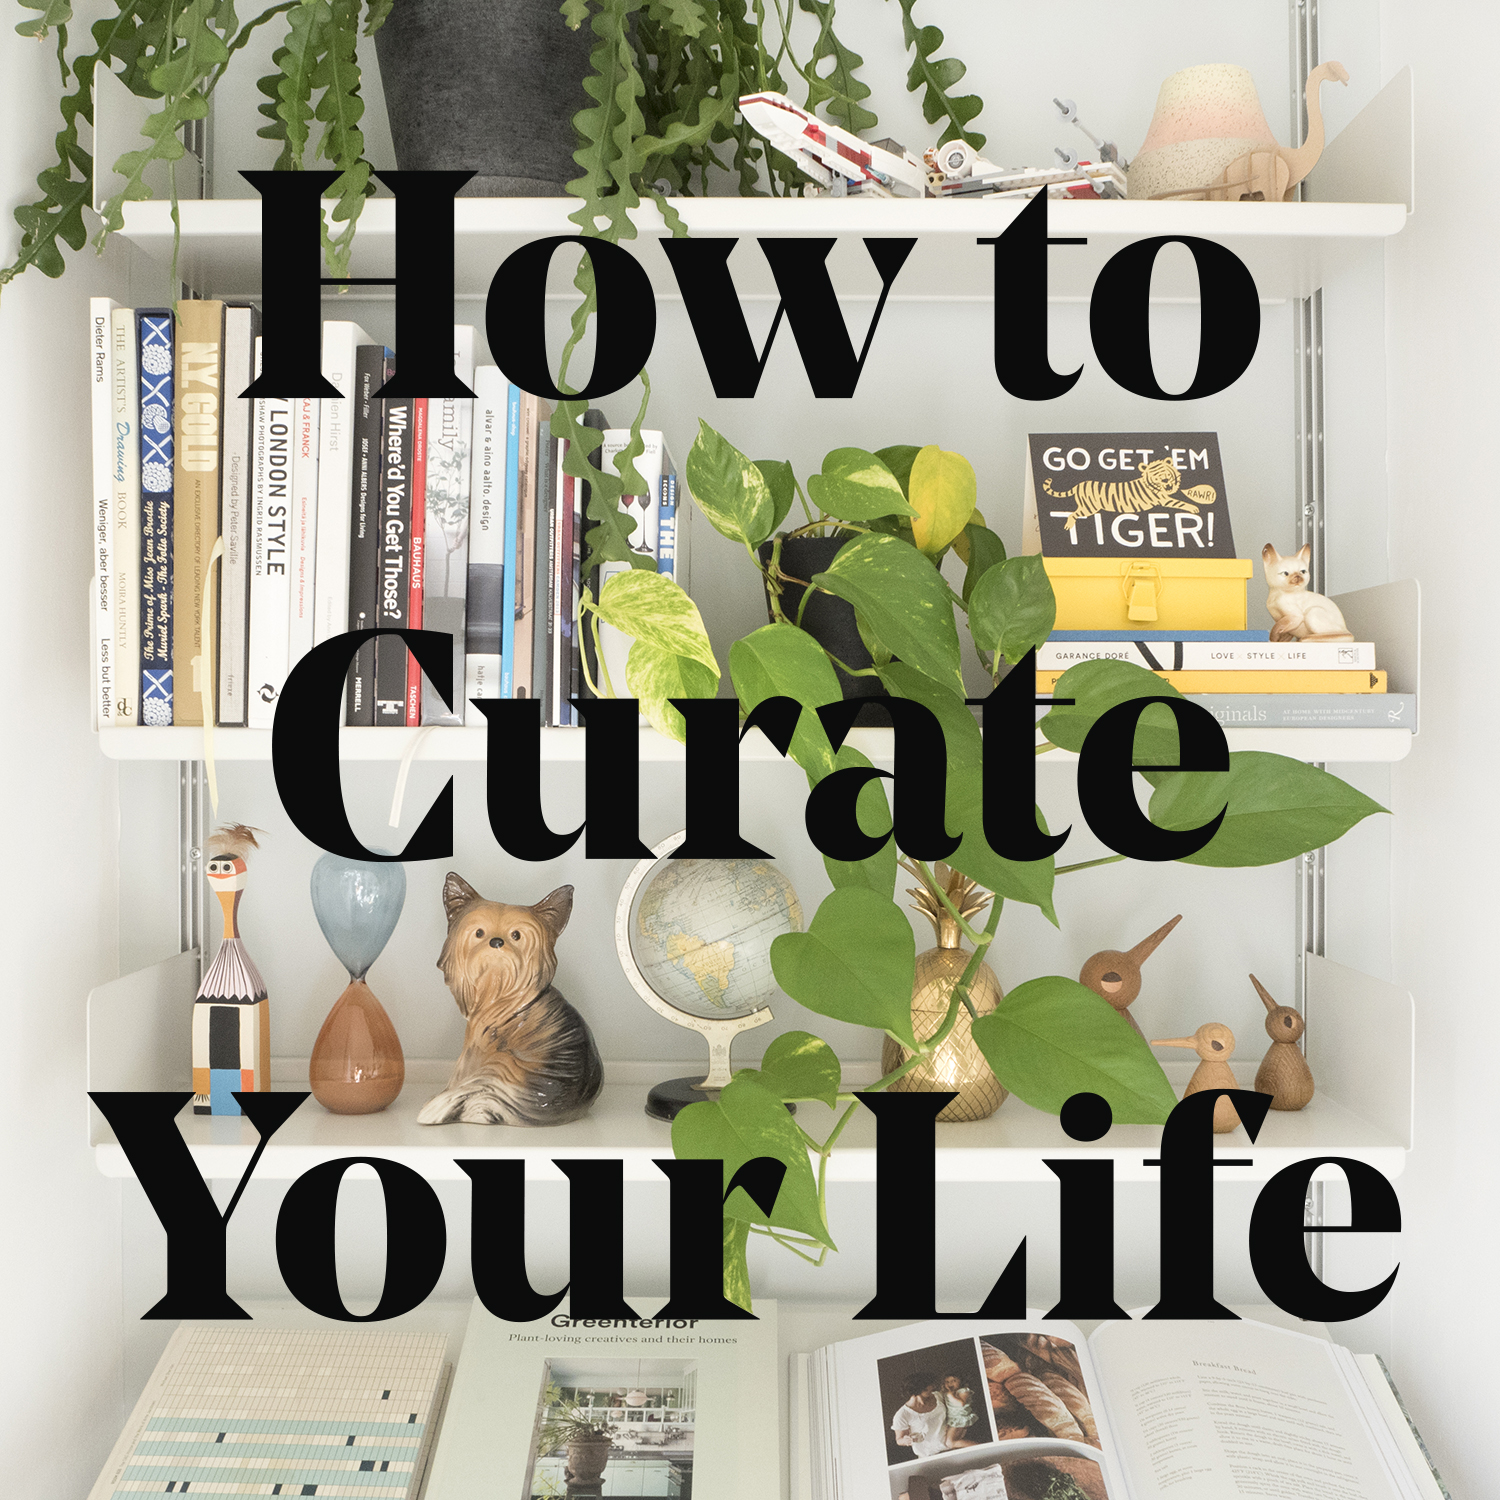 How to Curate Your Life - podcast_1500.jpg